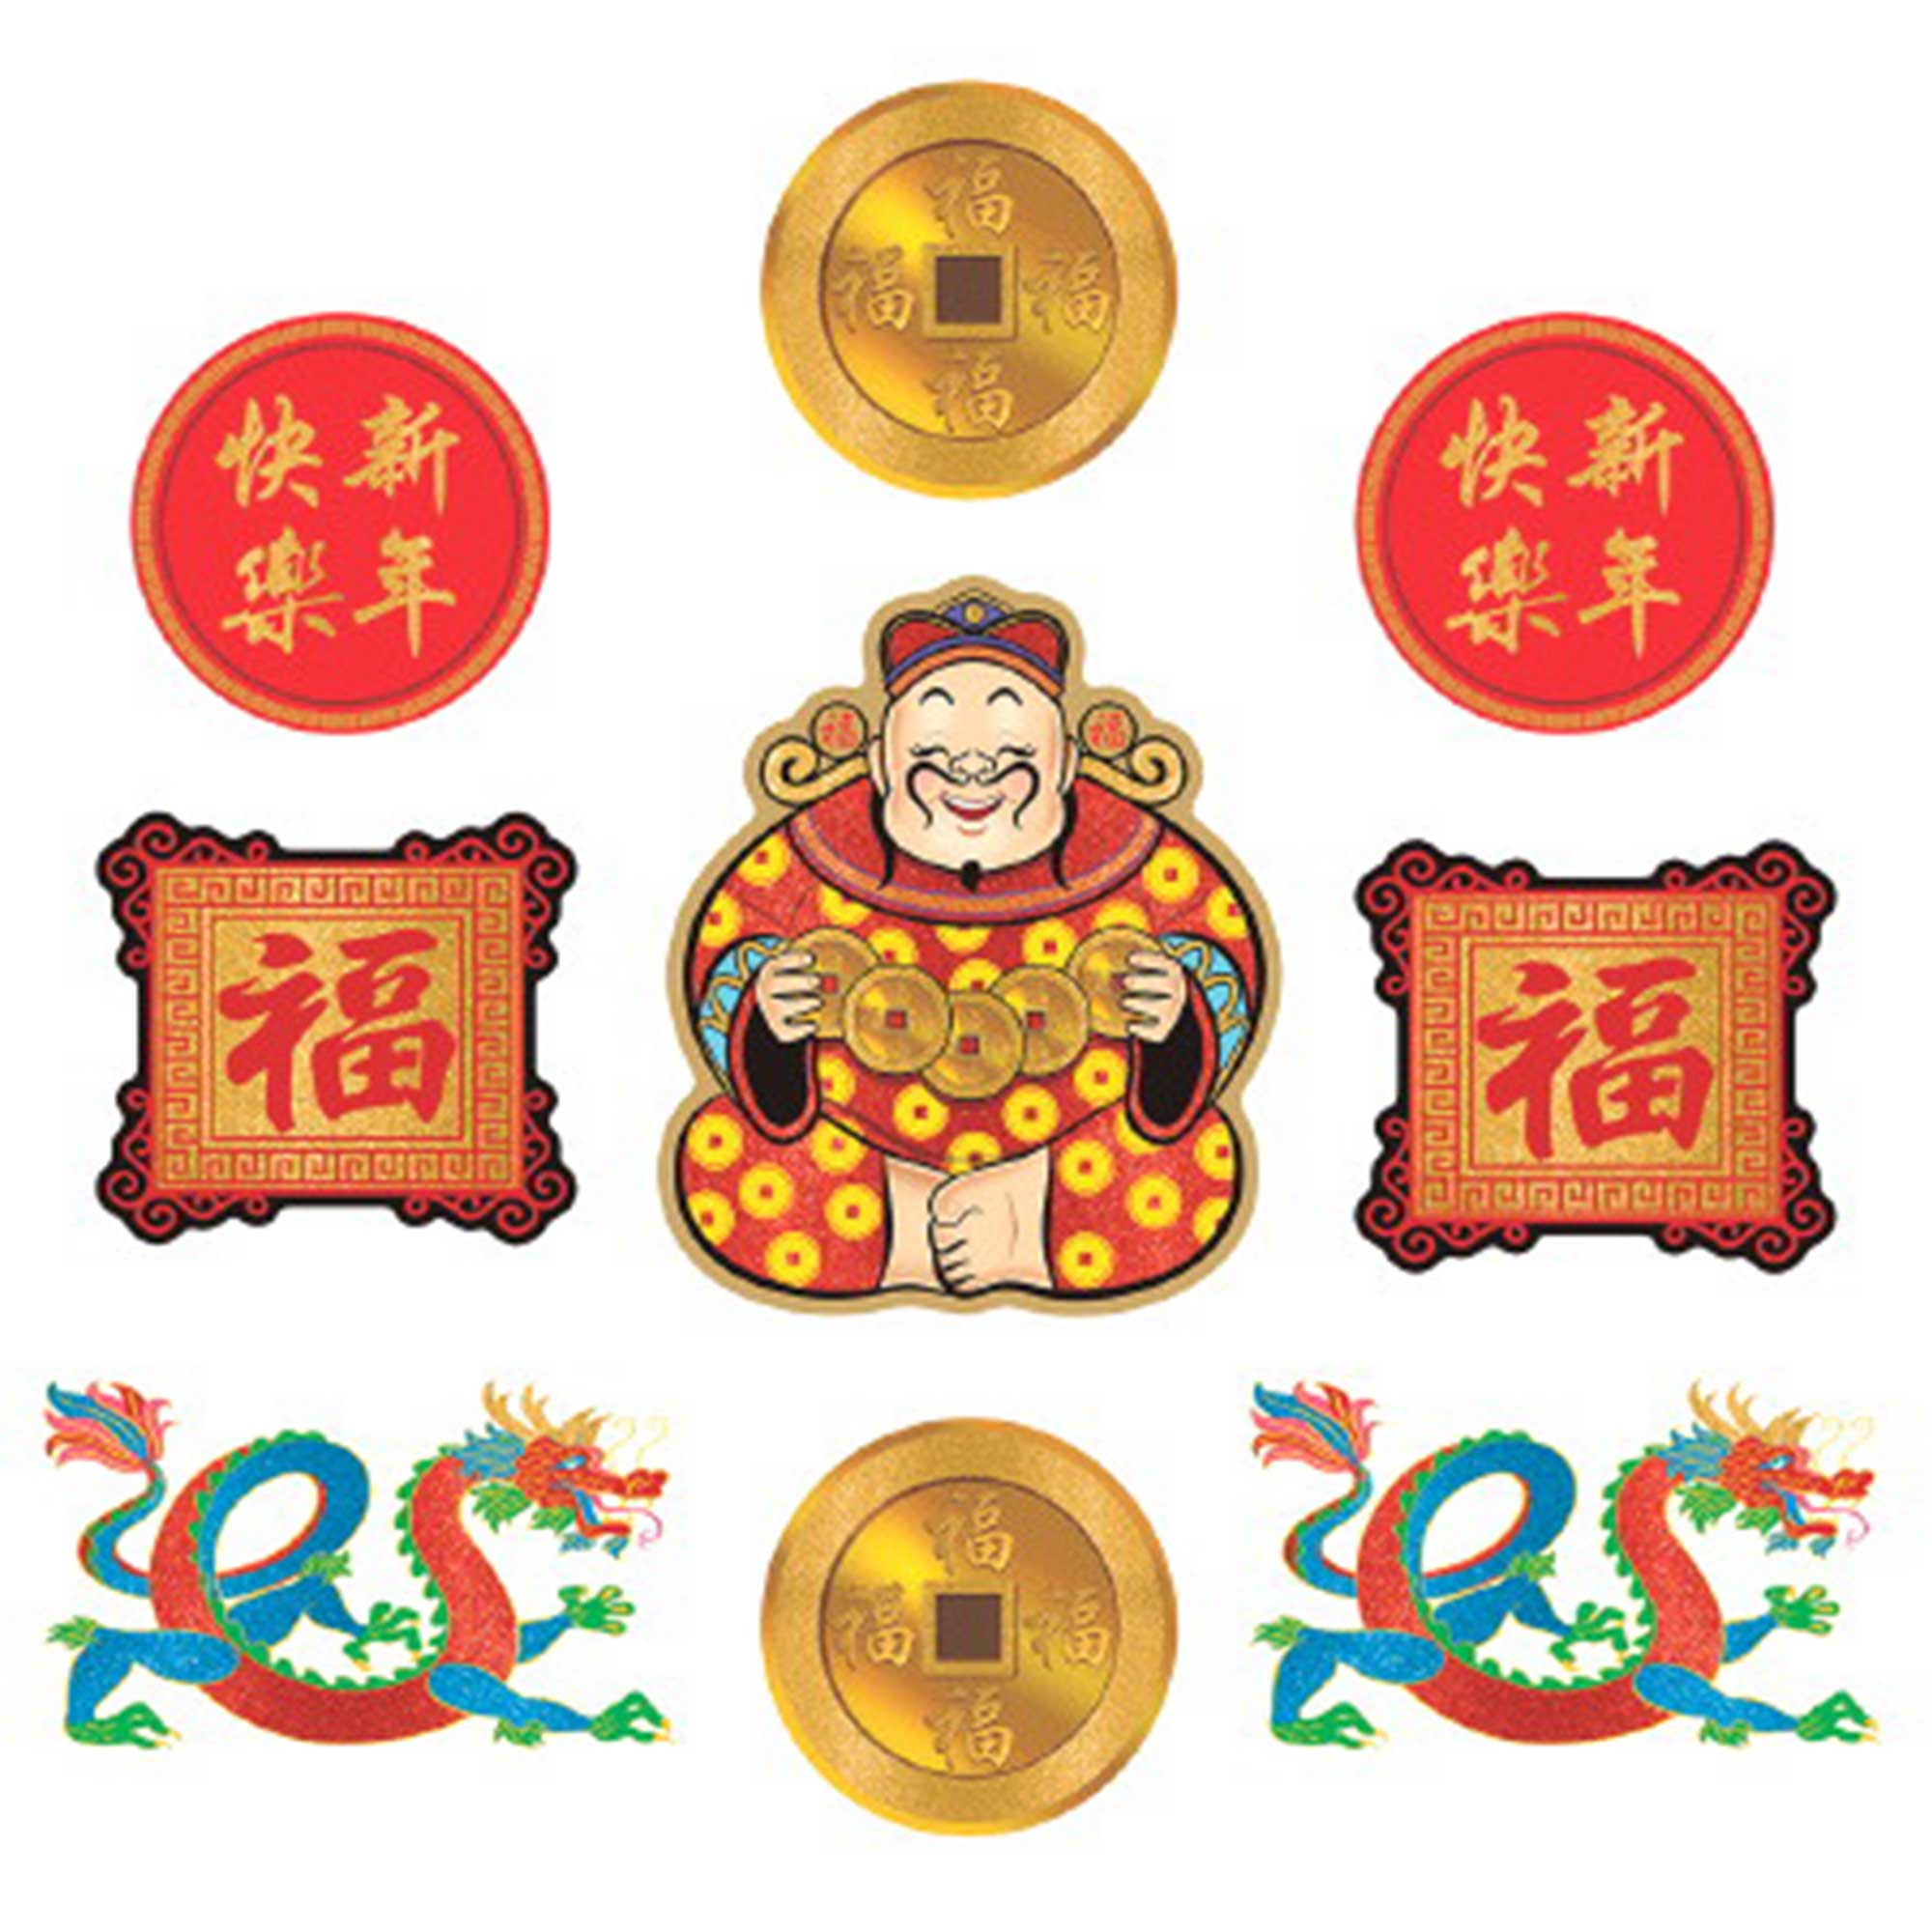 Chinese New Year Glitter Cardboard Cutouts